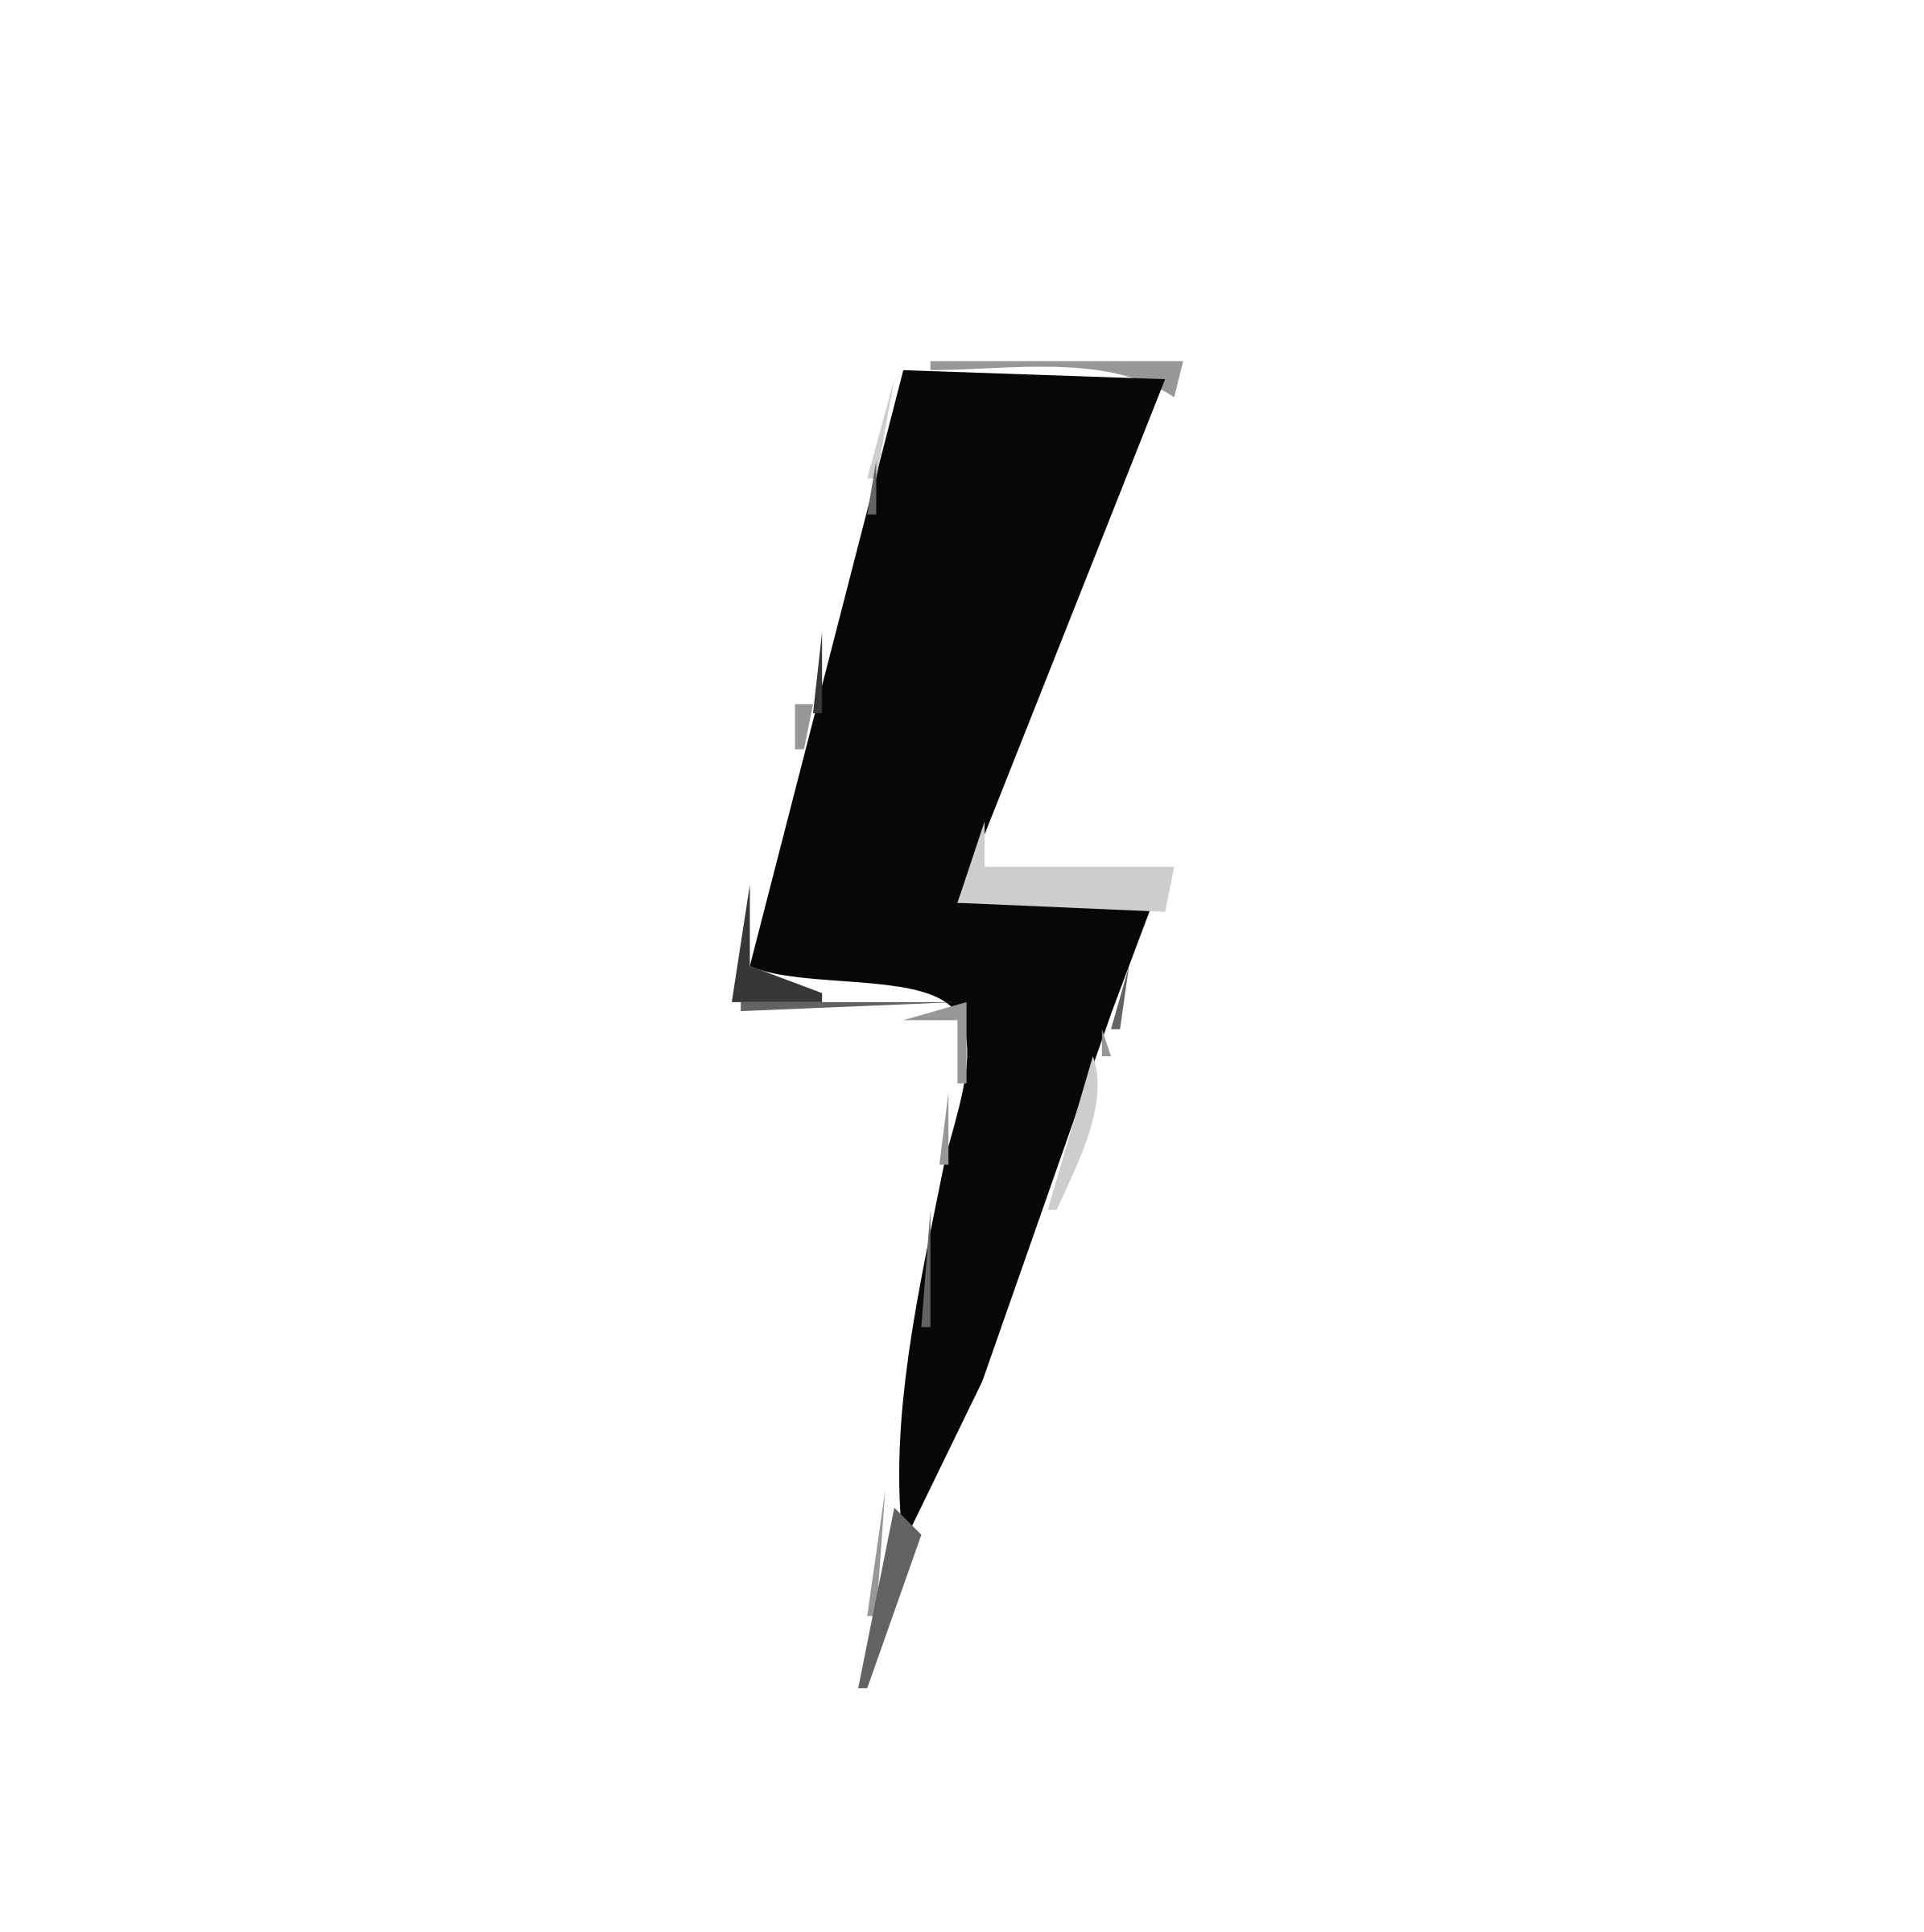 Thunder vector clipart png freeuse stock Lightning Bolt Vector Clipart image - Free stock photo - Public ... png freeuse stock